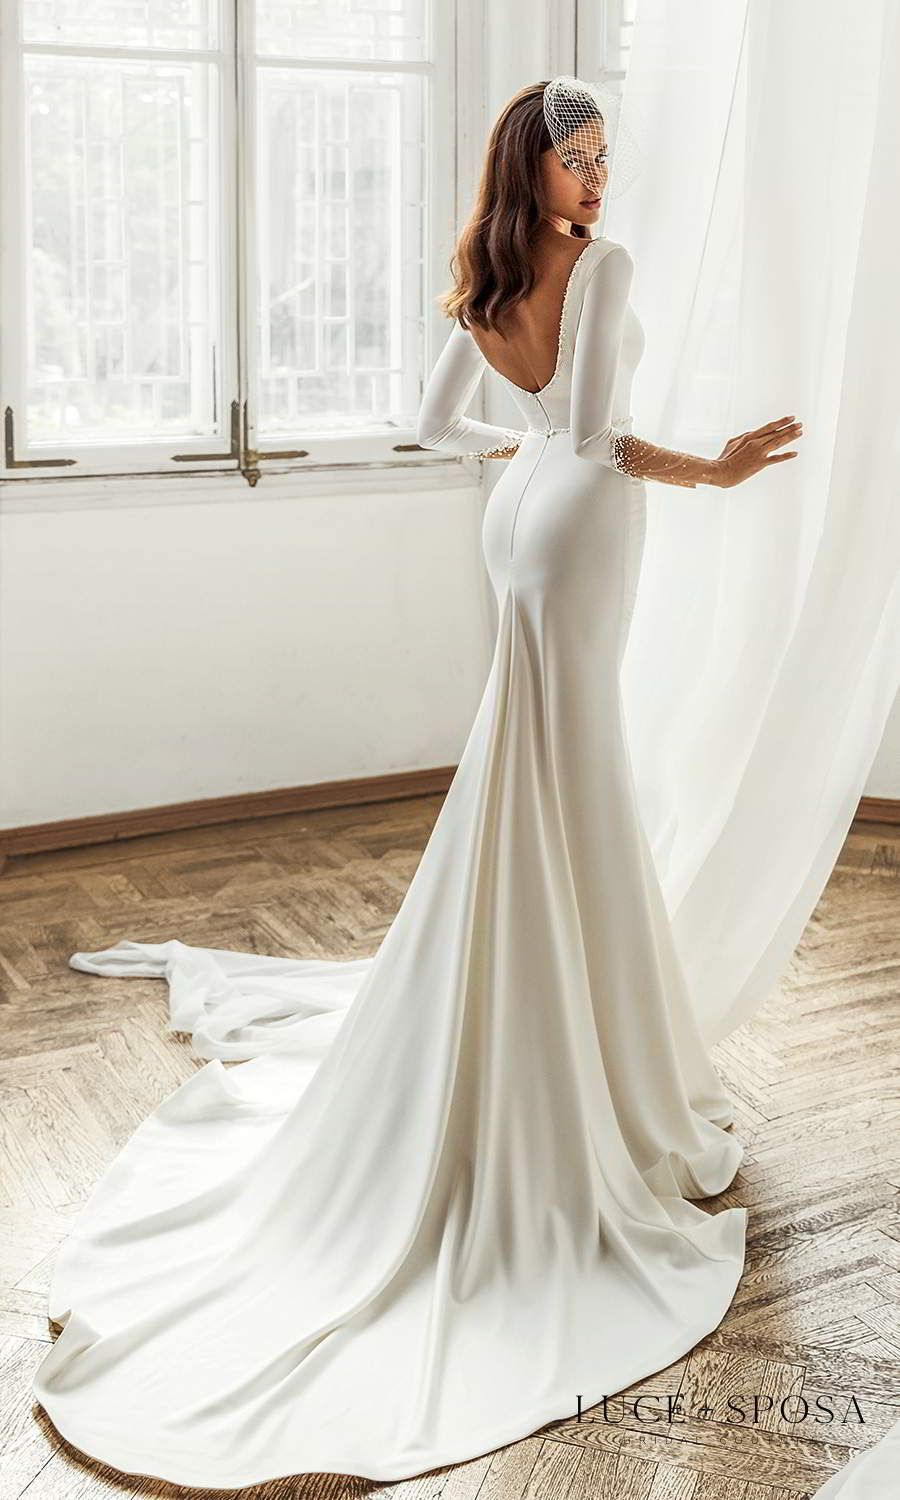 Luce Sposa 2021 Shades Of Couture Wedding Dresses Wedding Inspirasi In 2021 Wedding Dresses Wedding Dress Couture Wedding Gown Inspiration [ 1500 x 900 Pixel ]